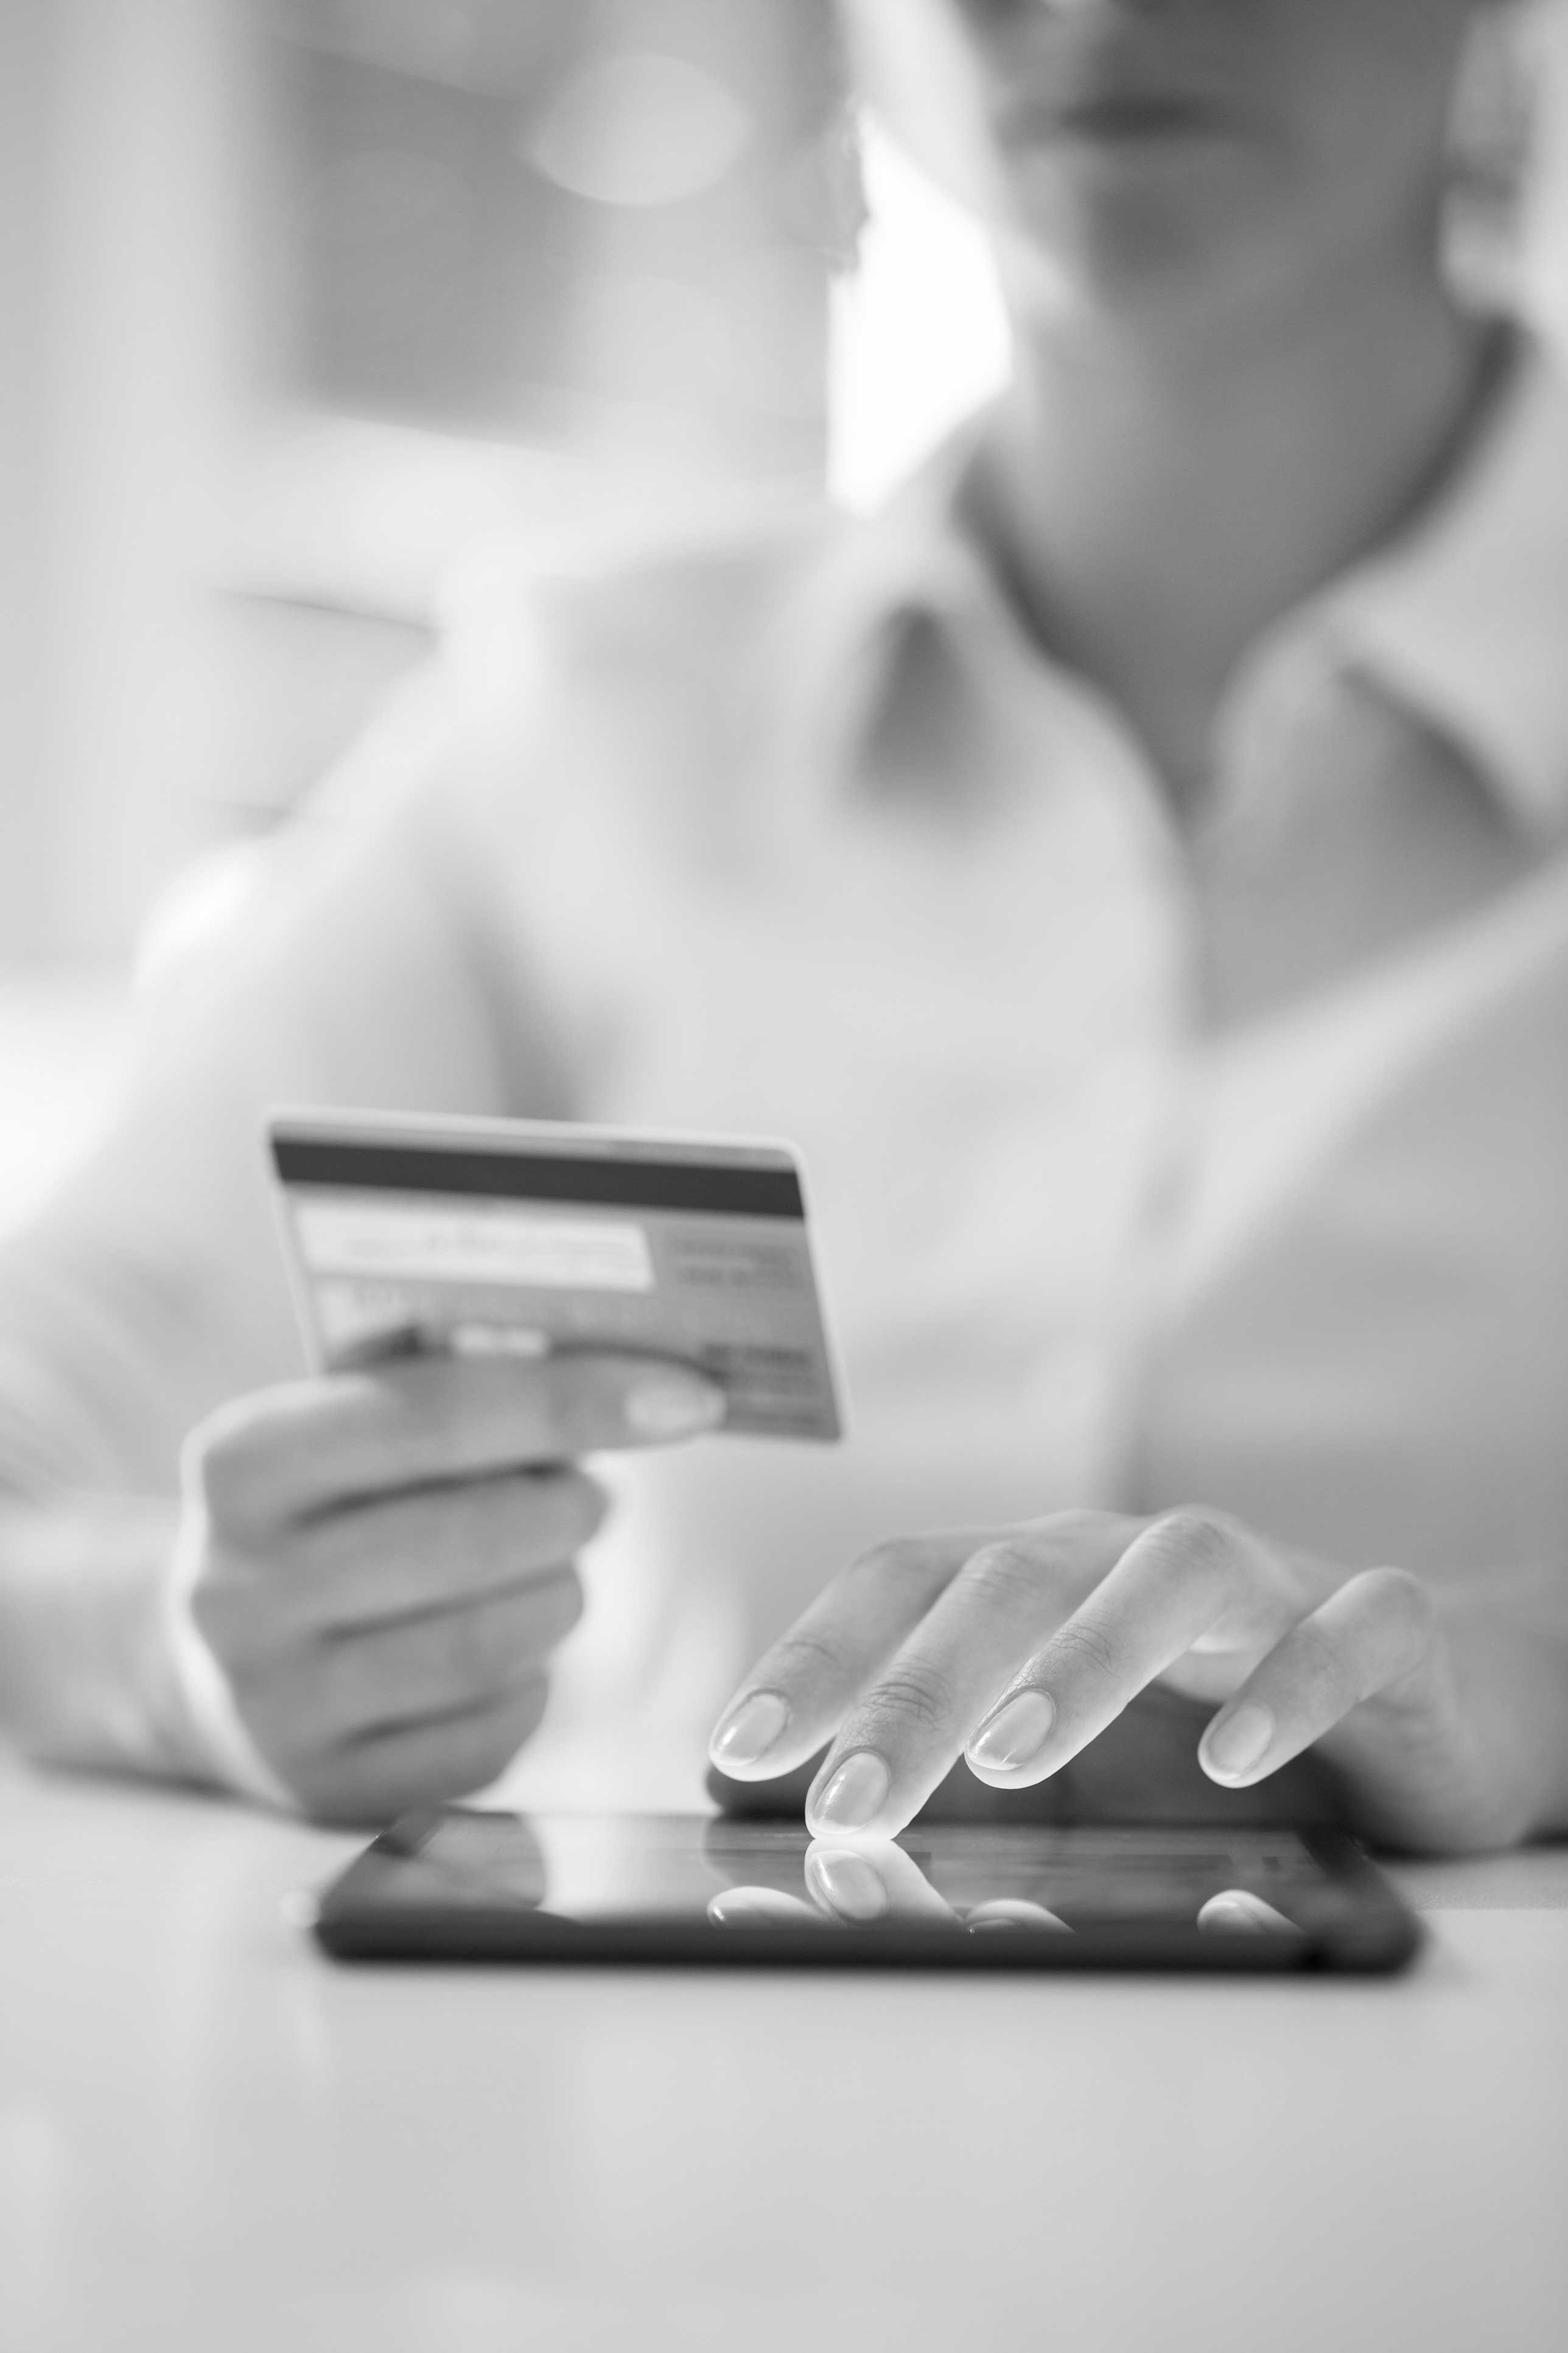 authenticated payments